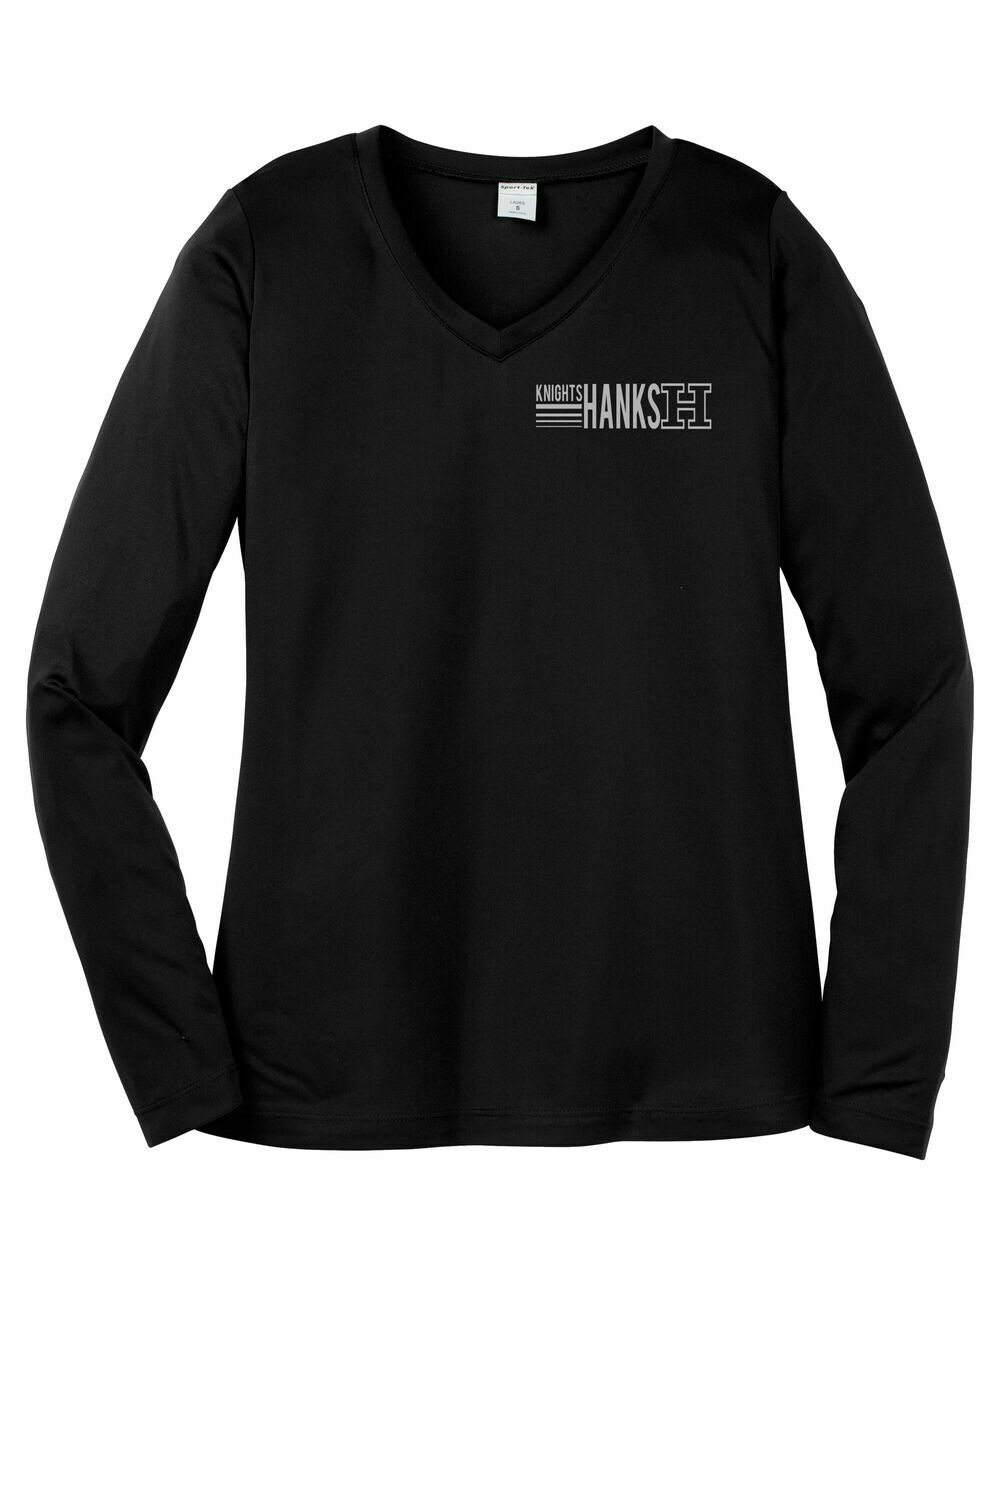 NEW! Line Logo Ladies Moisture Wicking Long Sleeve